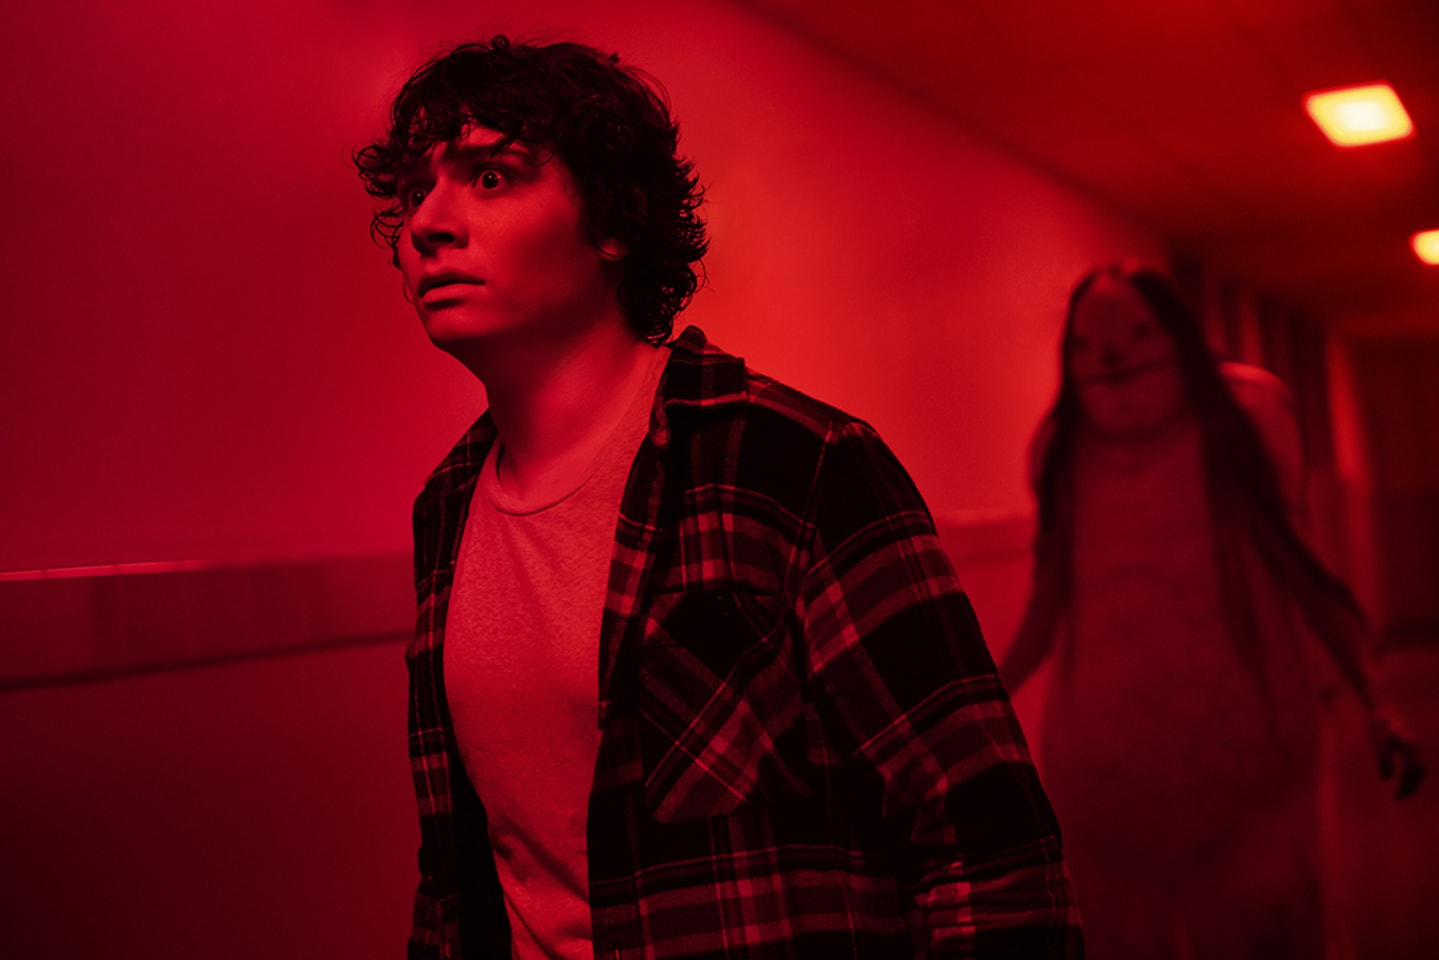 Chuck (Austin Zajur) runs from the Pale Lady in 'Scary Stories to Tell in the Dark' (Courtesy: CBS Films)